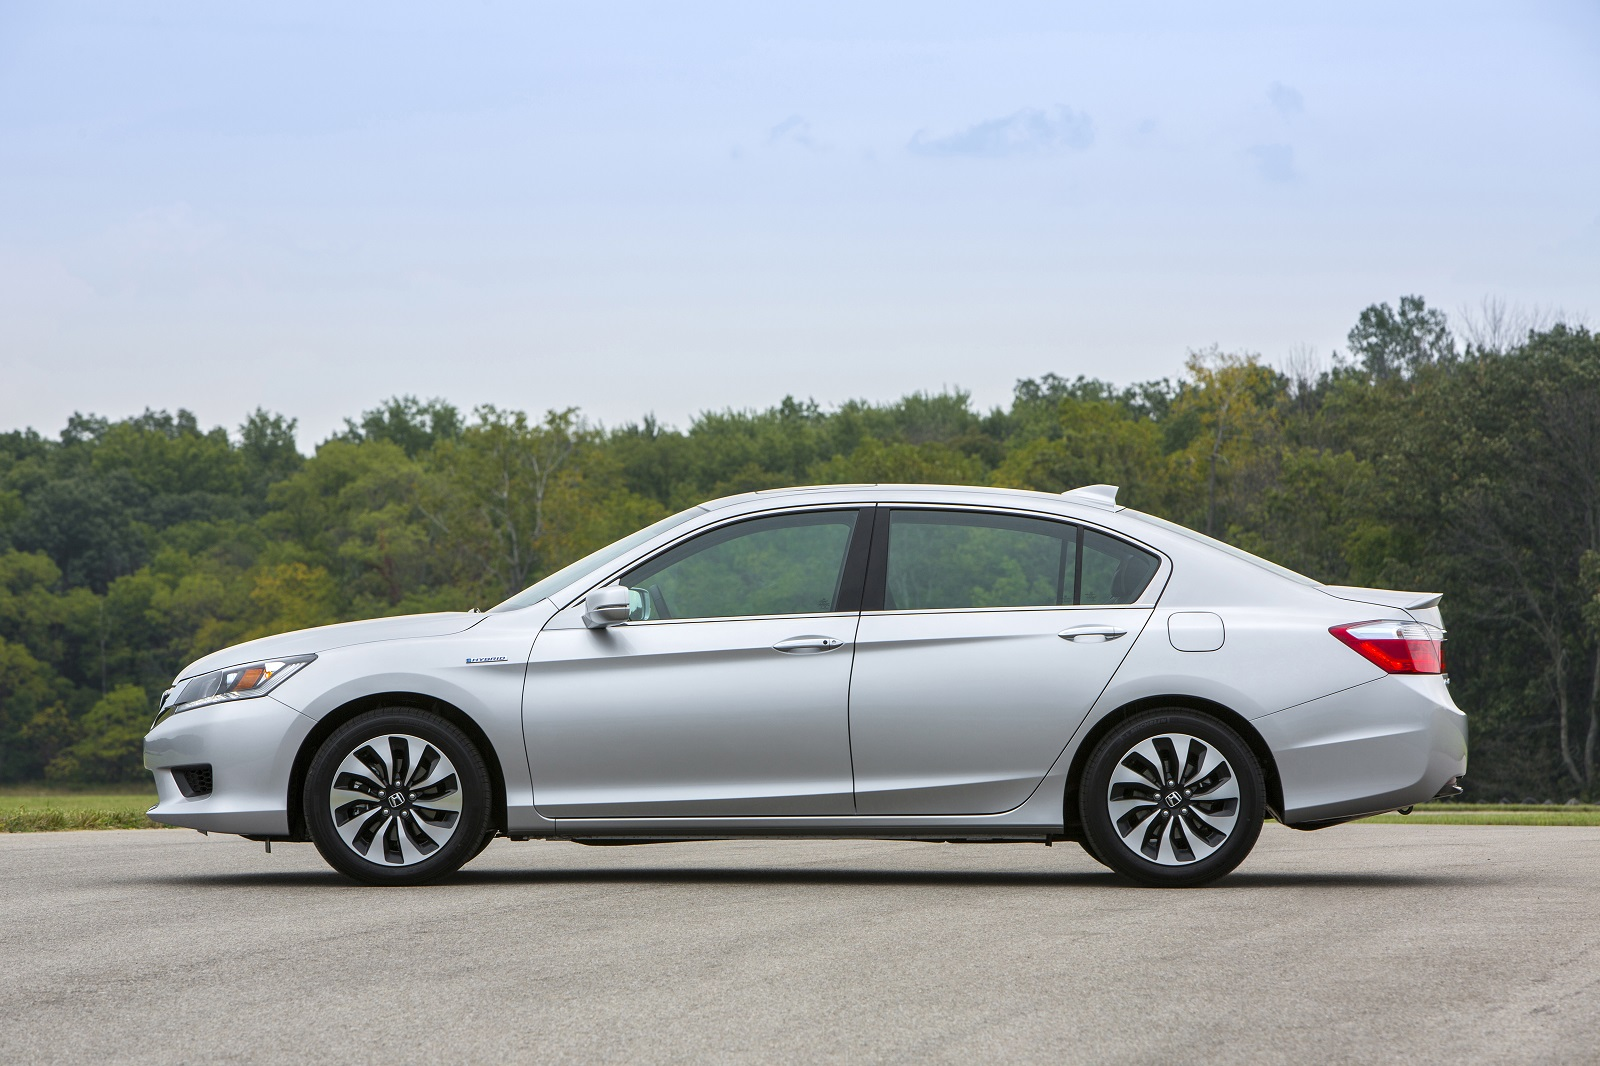 2014 2015 Honda Accord Hybrid Recalled For Electrical Problem, Disabling Of  Gas Engine